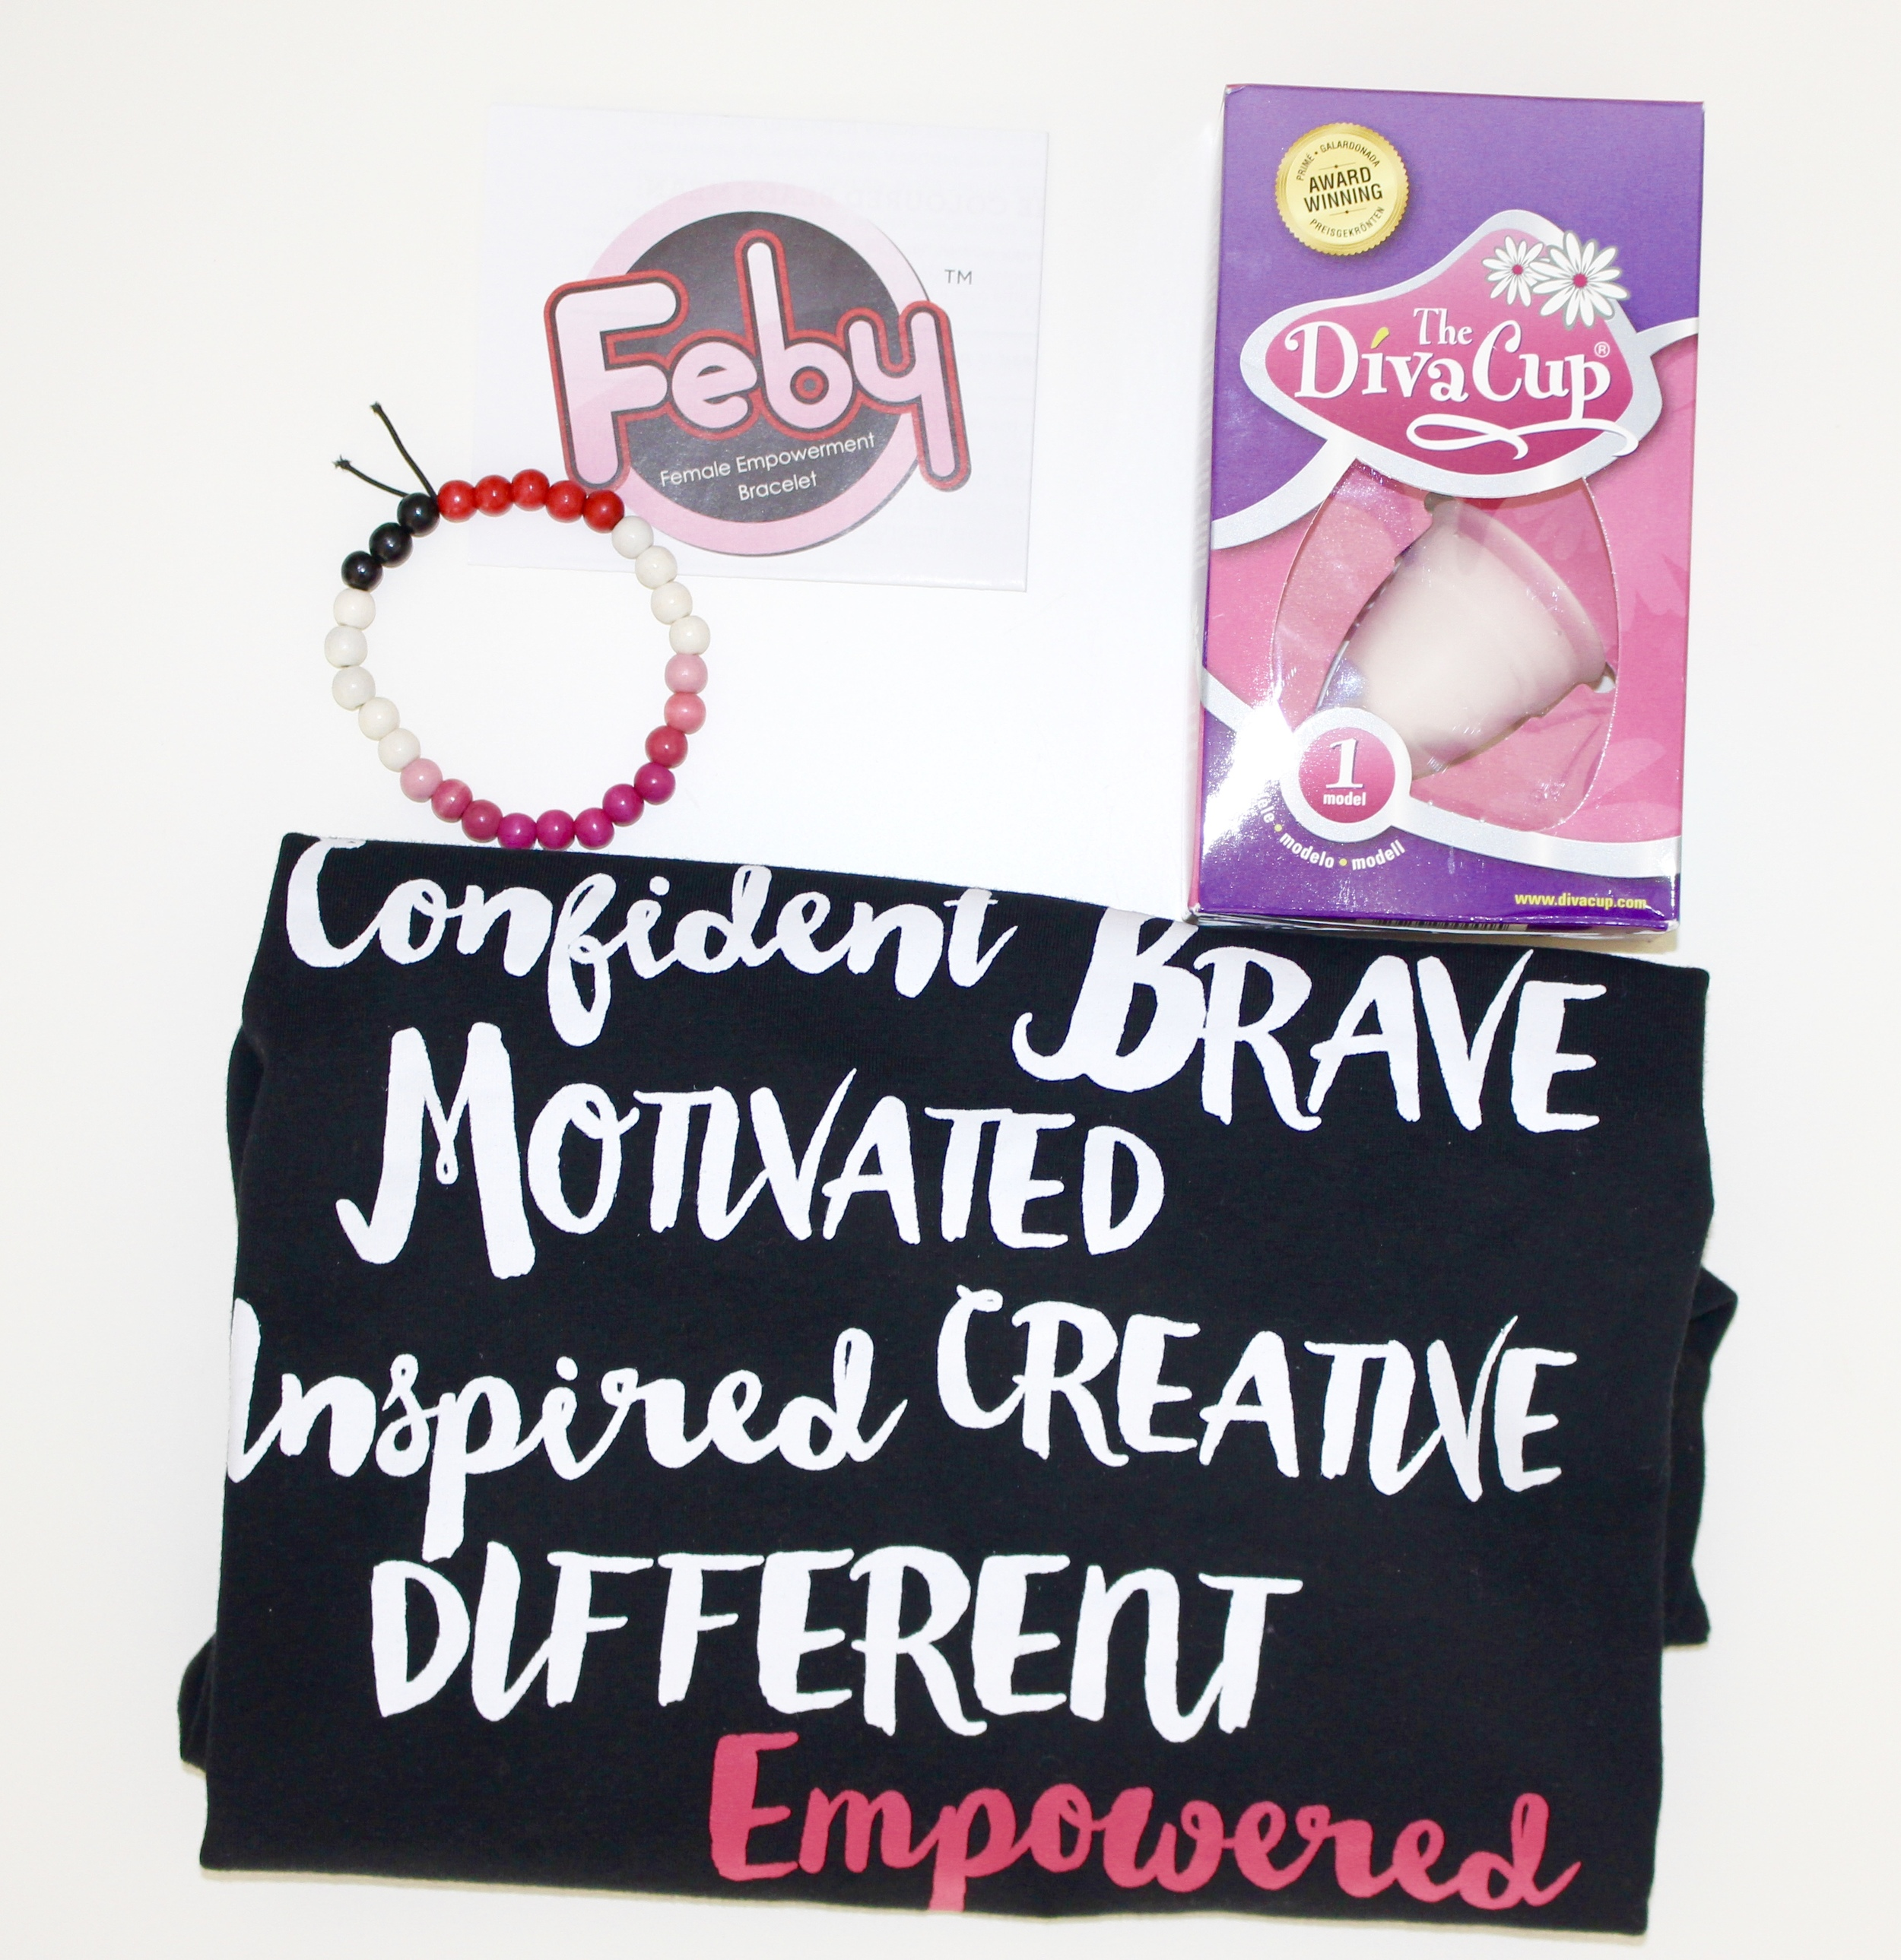 Prize consists of a Female Empowerment Bracelet, DivaCup and a t-shirt. Prize valued at $60